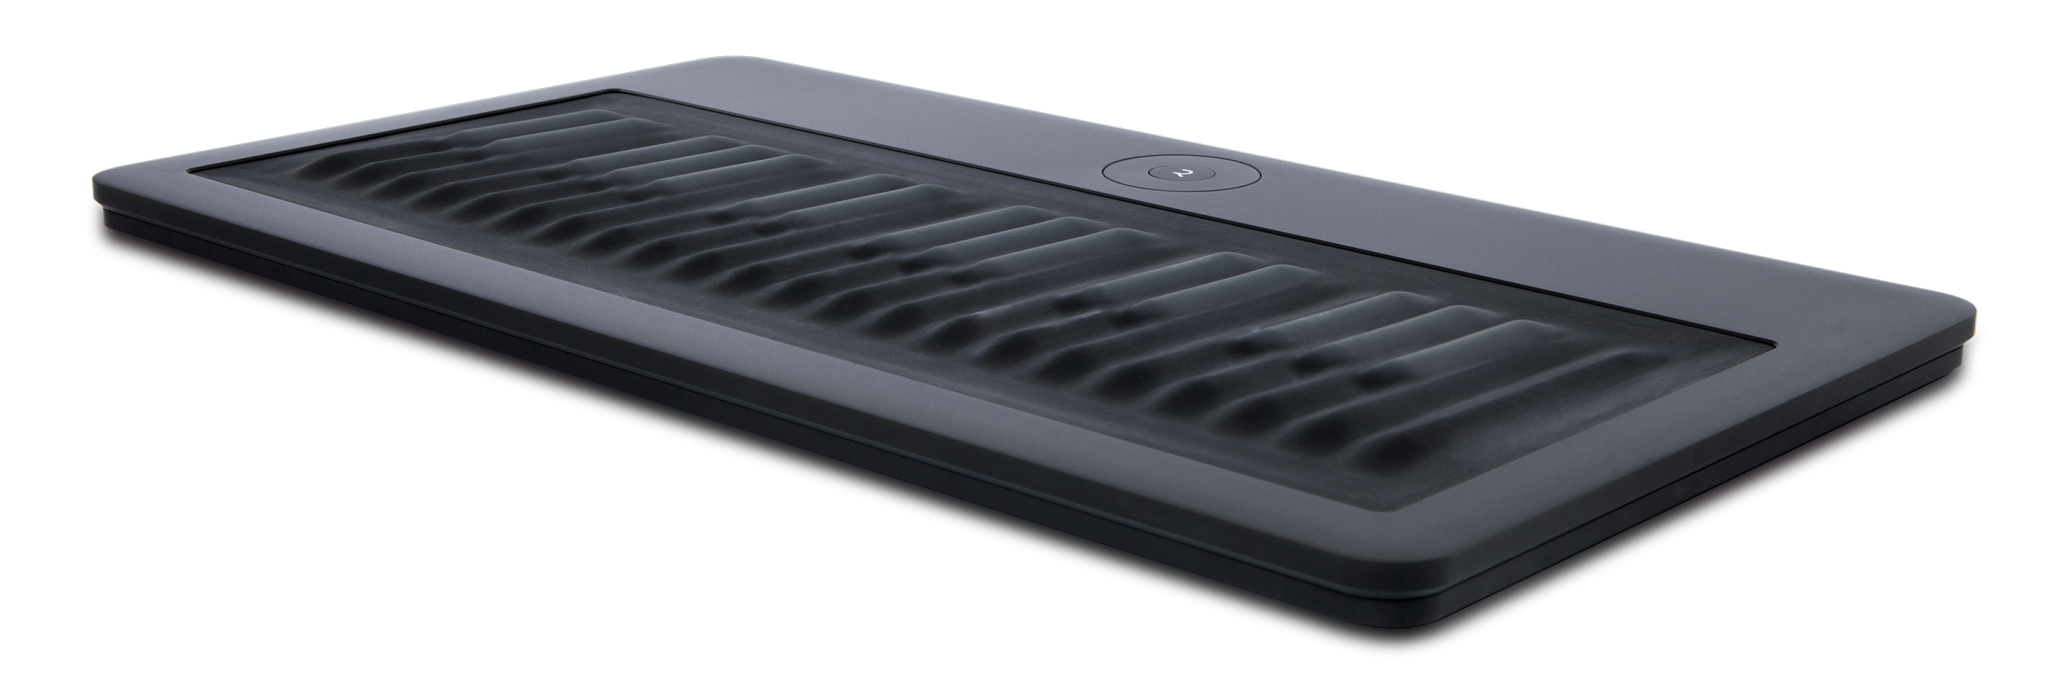 Seaboard-GRAND-Studio-Front-angle-copy.png